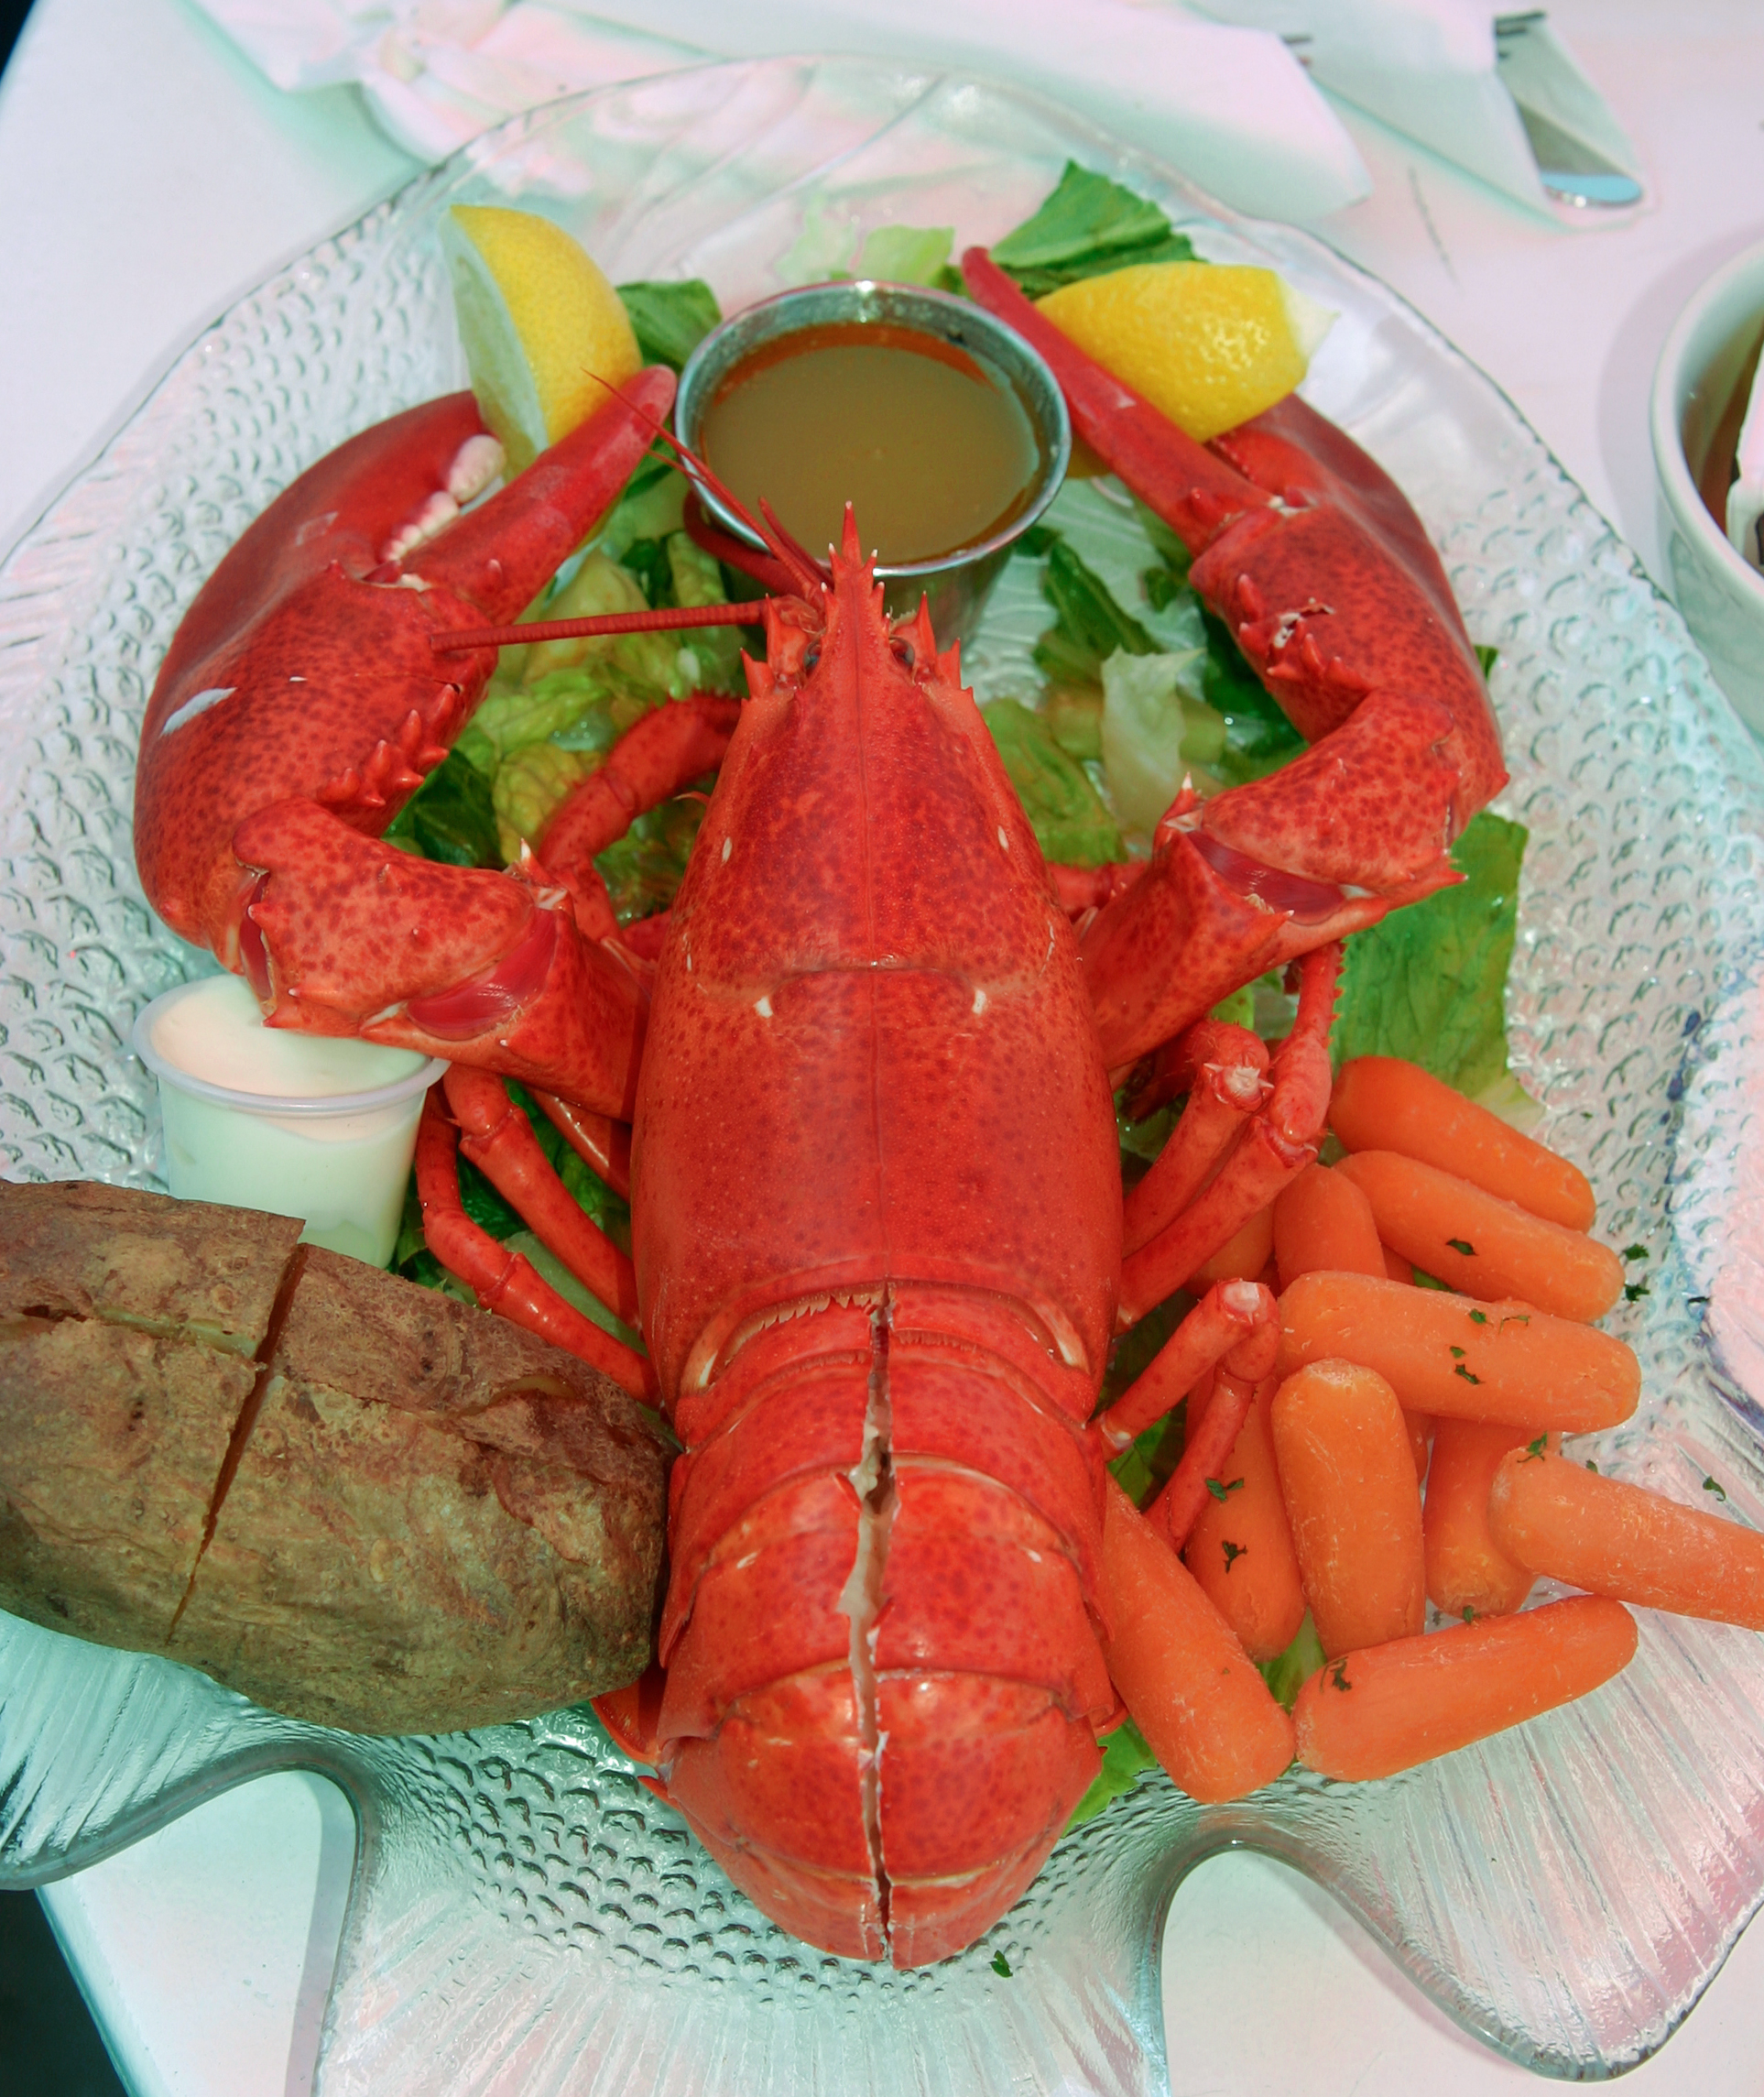 external image 400pxLobster_meal.jpg